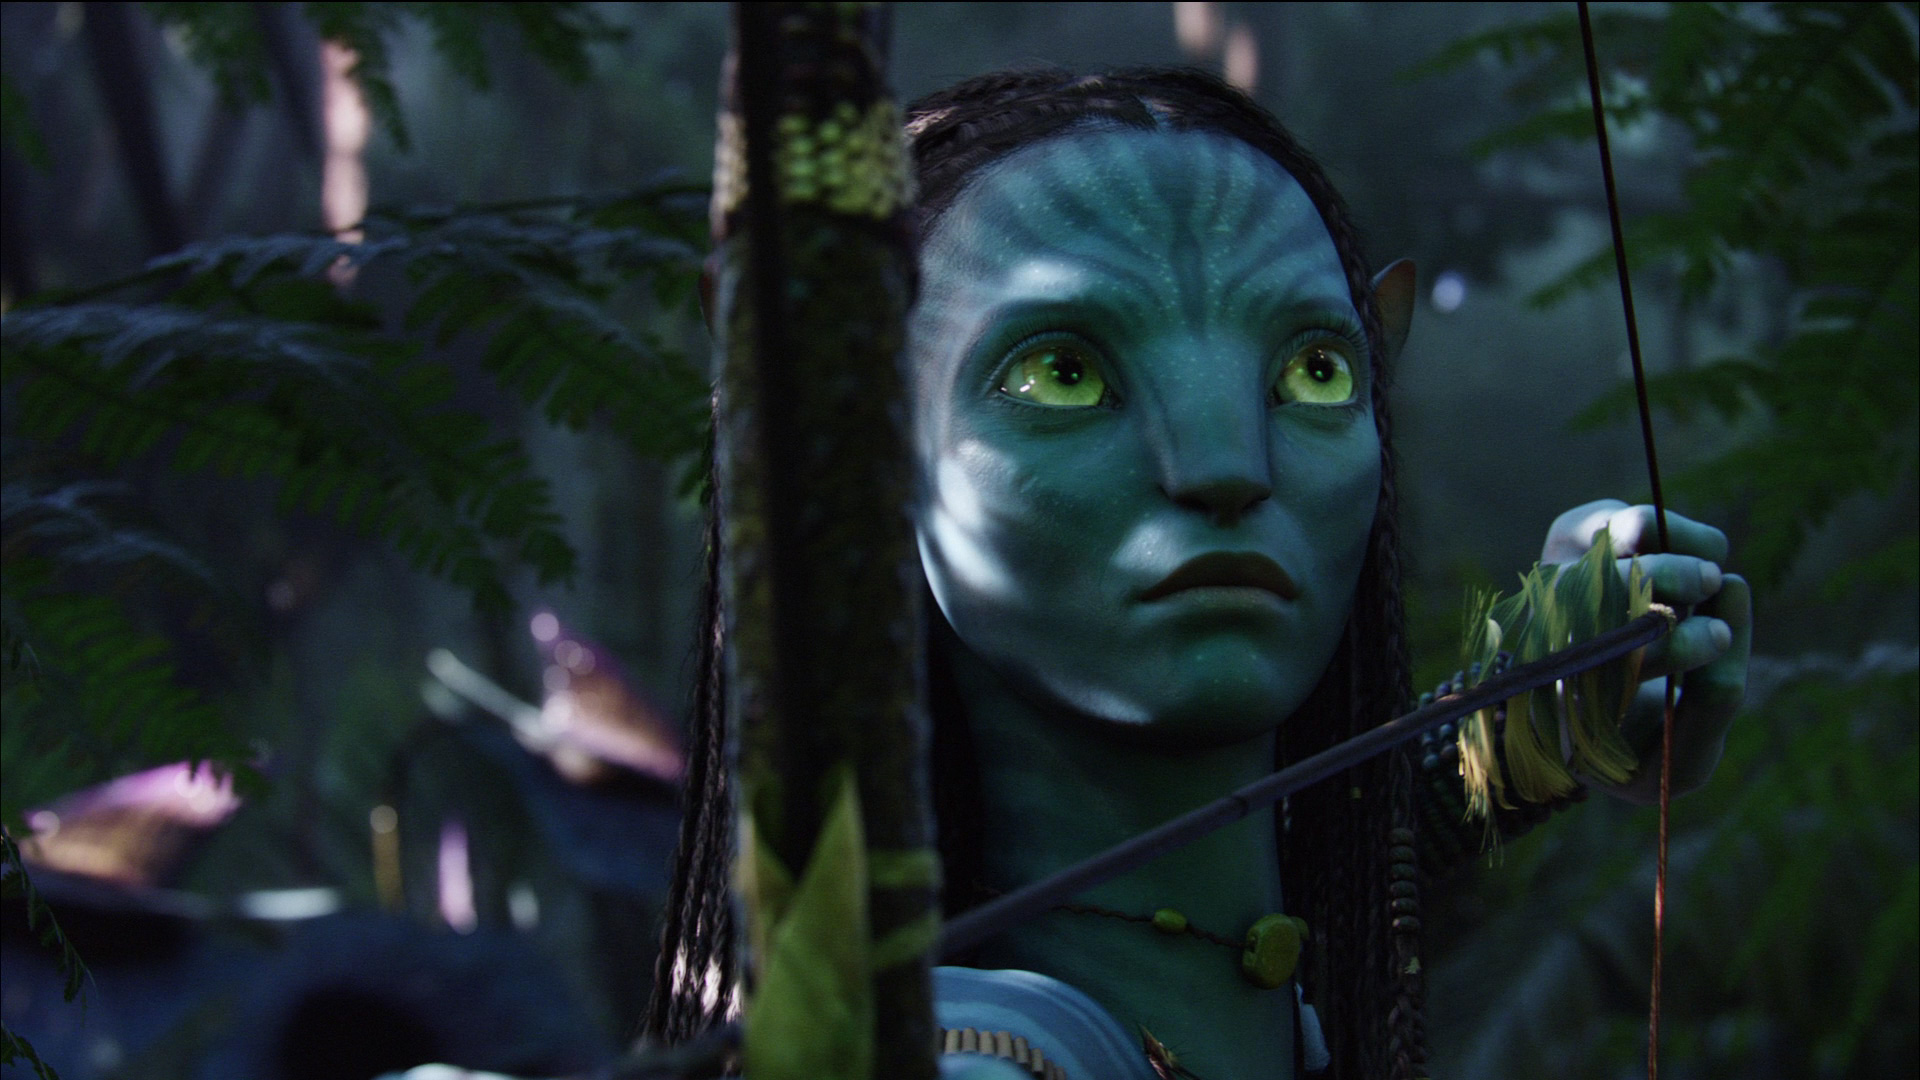 Avatar 62a6356276486cc631 deleted/additional scenes/special edition hd 67e6cc67e631 648627644 and background 62a6356276486cc631